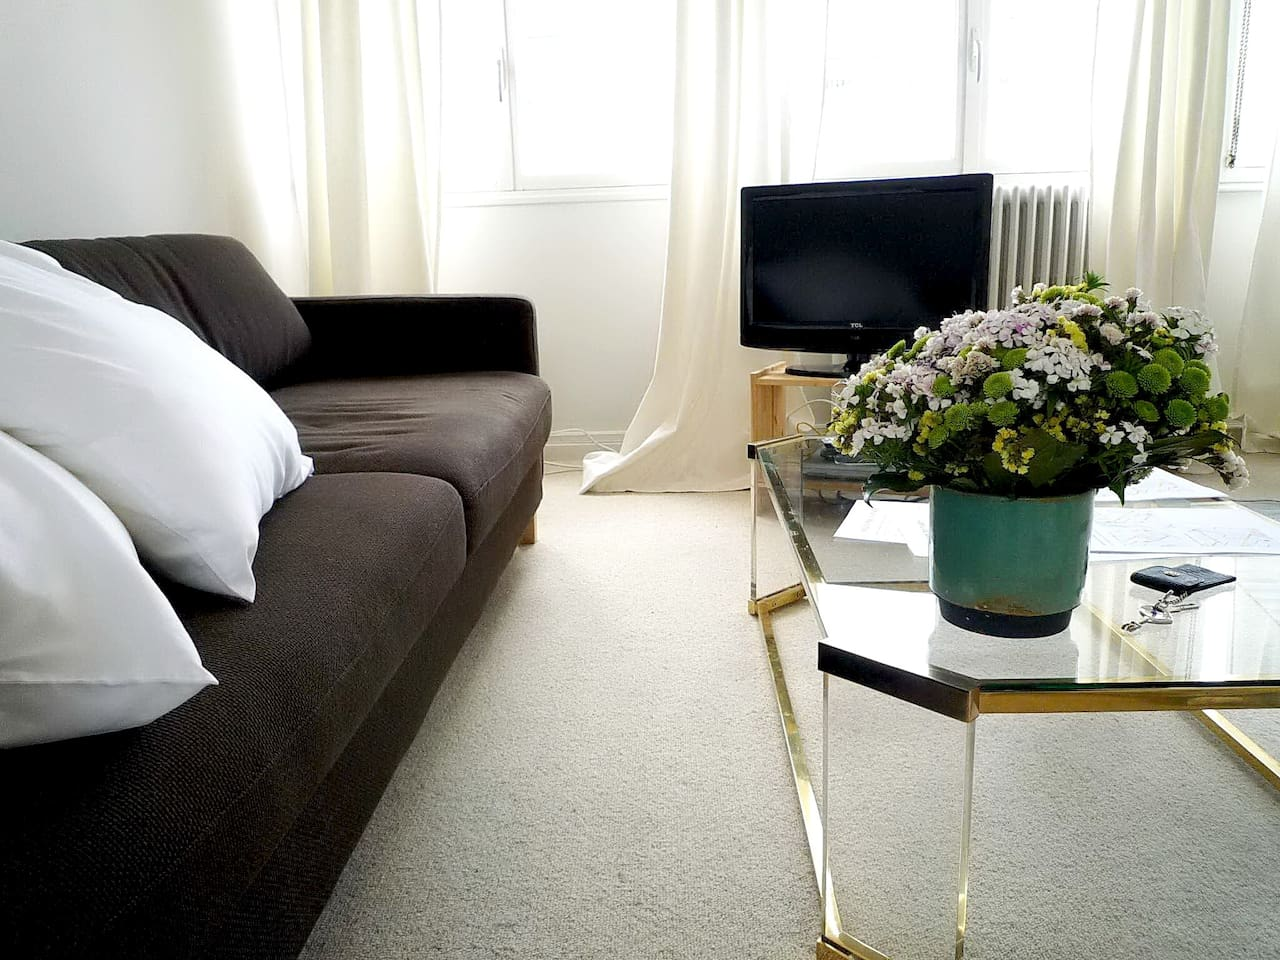 one of the comfortable sofa beds, TV... and flowers:)